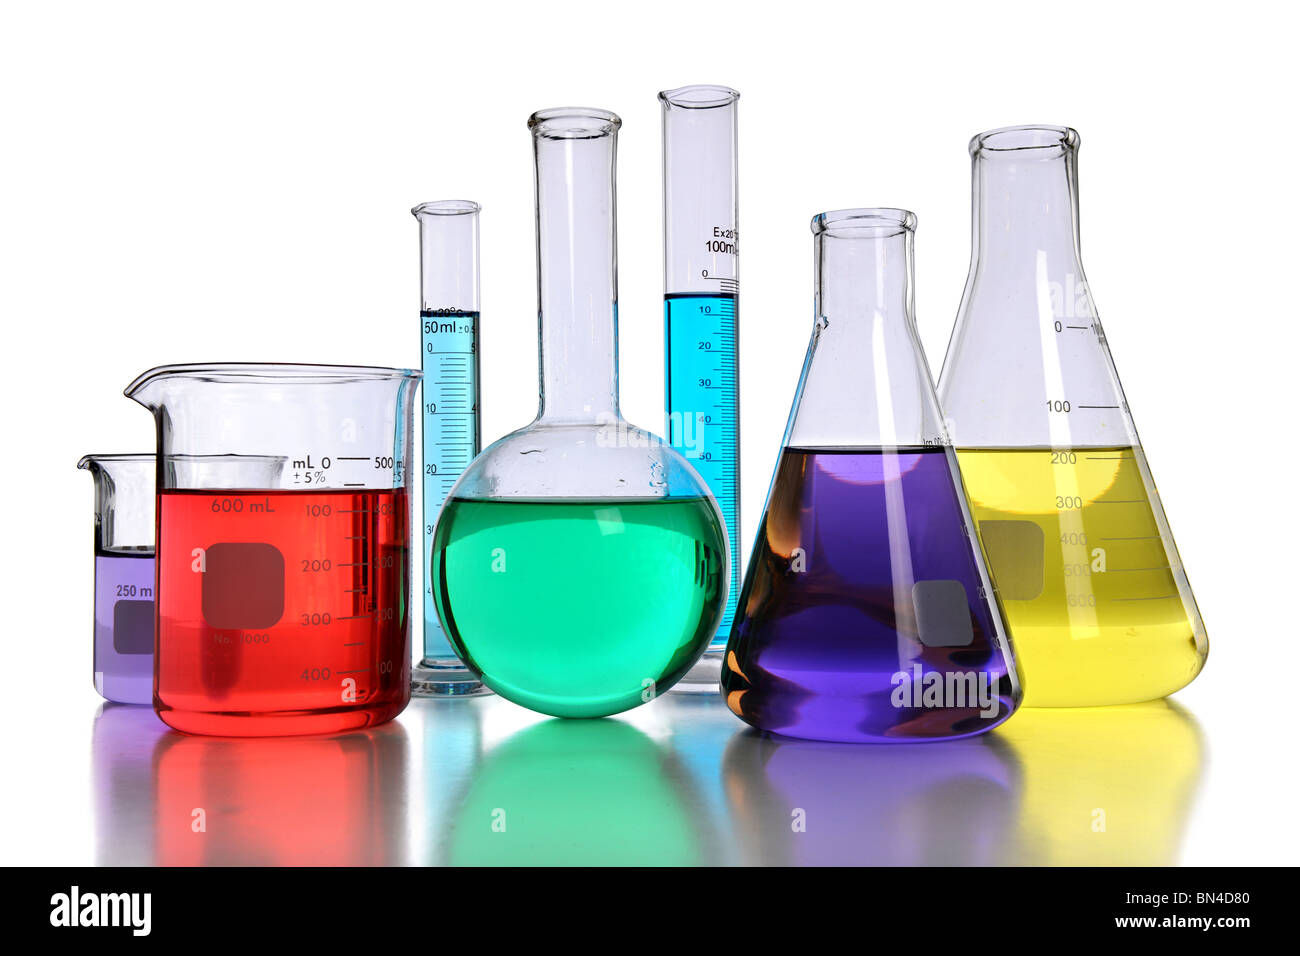 Laboratory glassware with various colored liquids with reflection on table - Stock Image